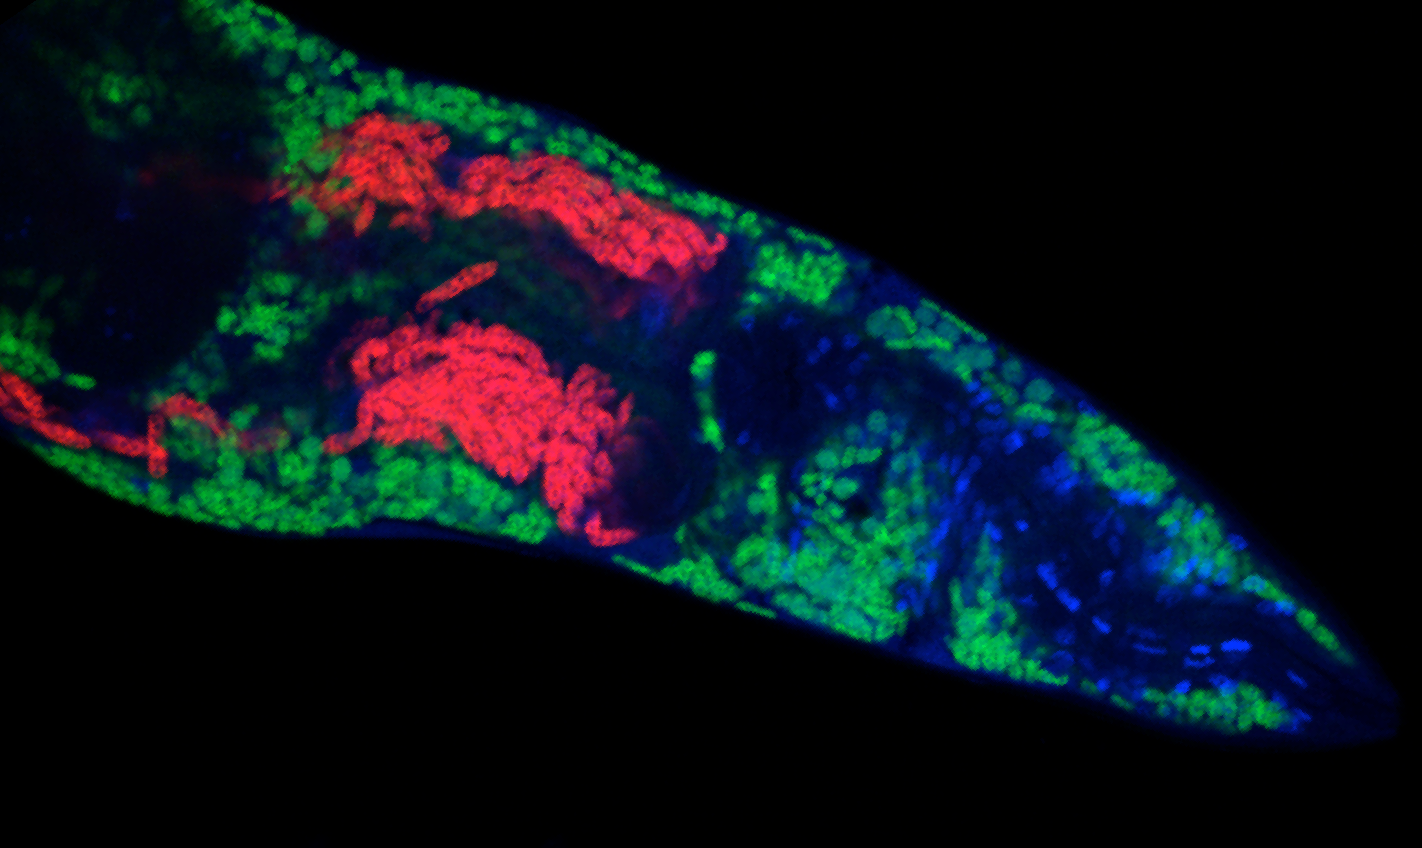 Two different microsporidia species, Nematocida parisii (red) and Nematocida displodere (green) infecting C. elegans  Picture credit: Robert Luallen